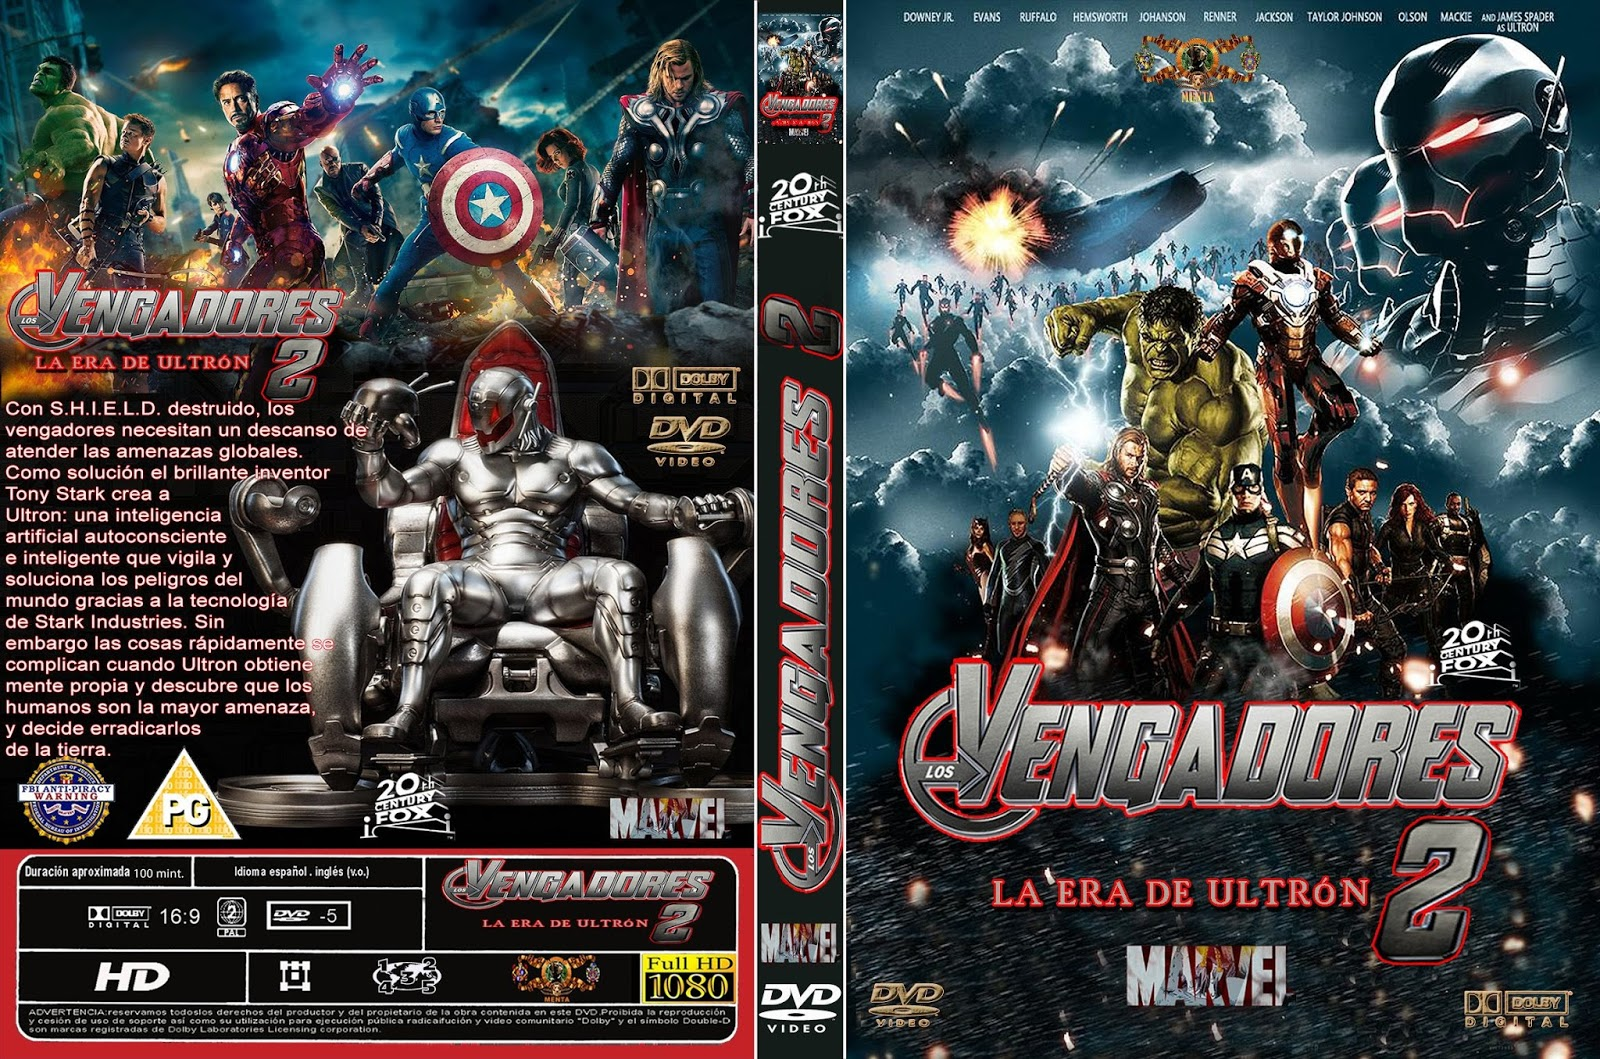 Ant Man 2015 Latino full movie download in hindi Hd 720p